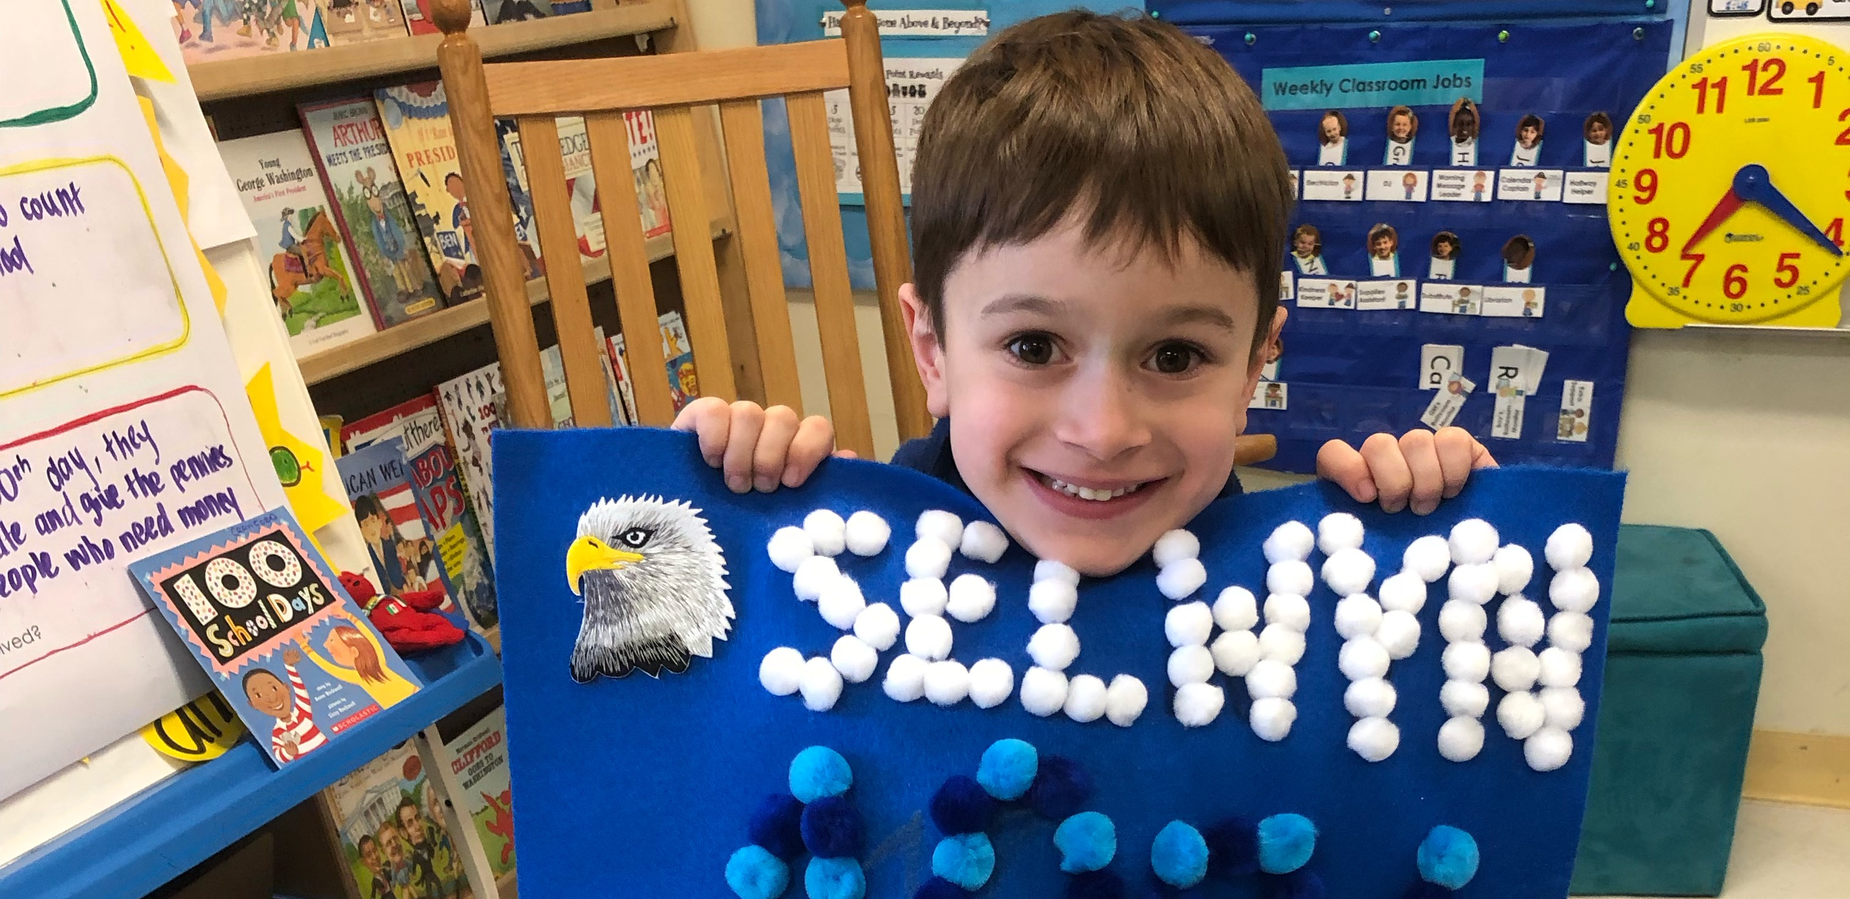 Kindergarten student holding 100th day project